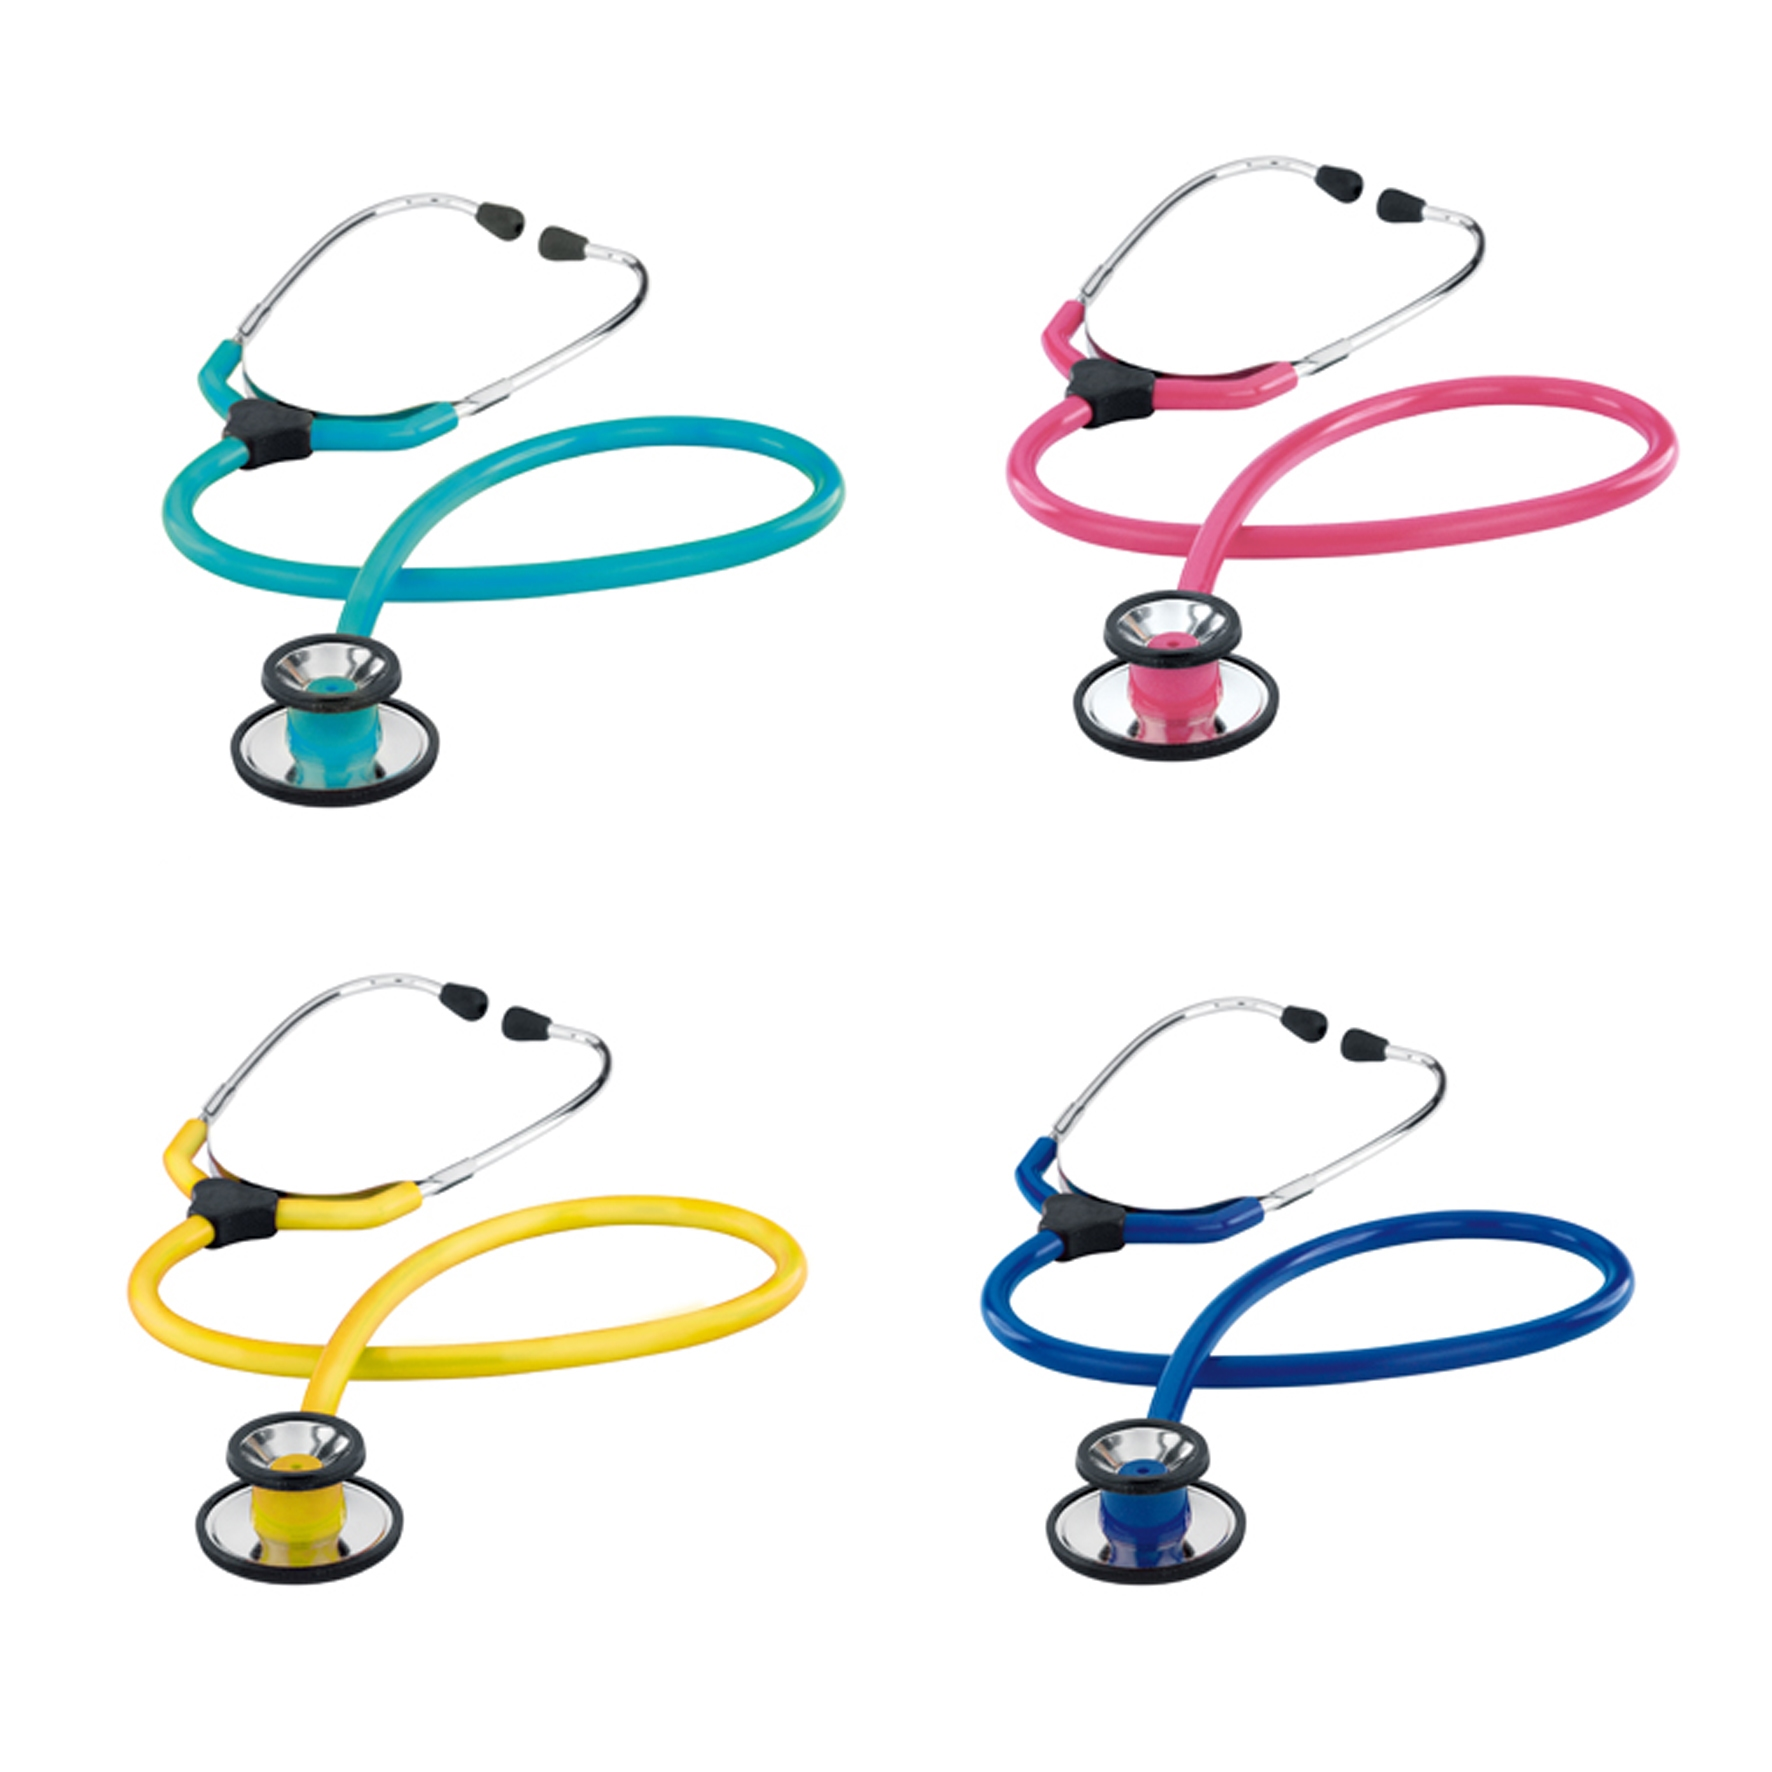 Colorcop stéthoscopes